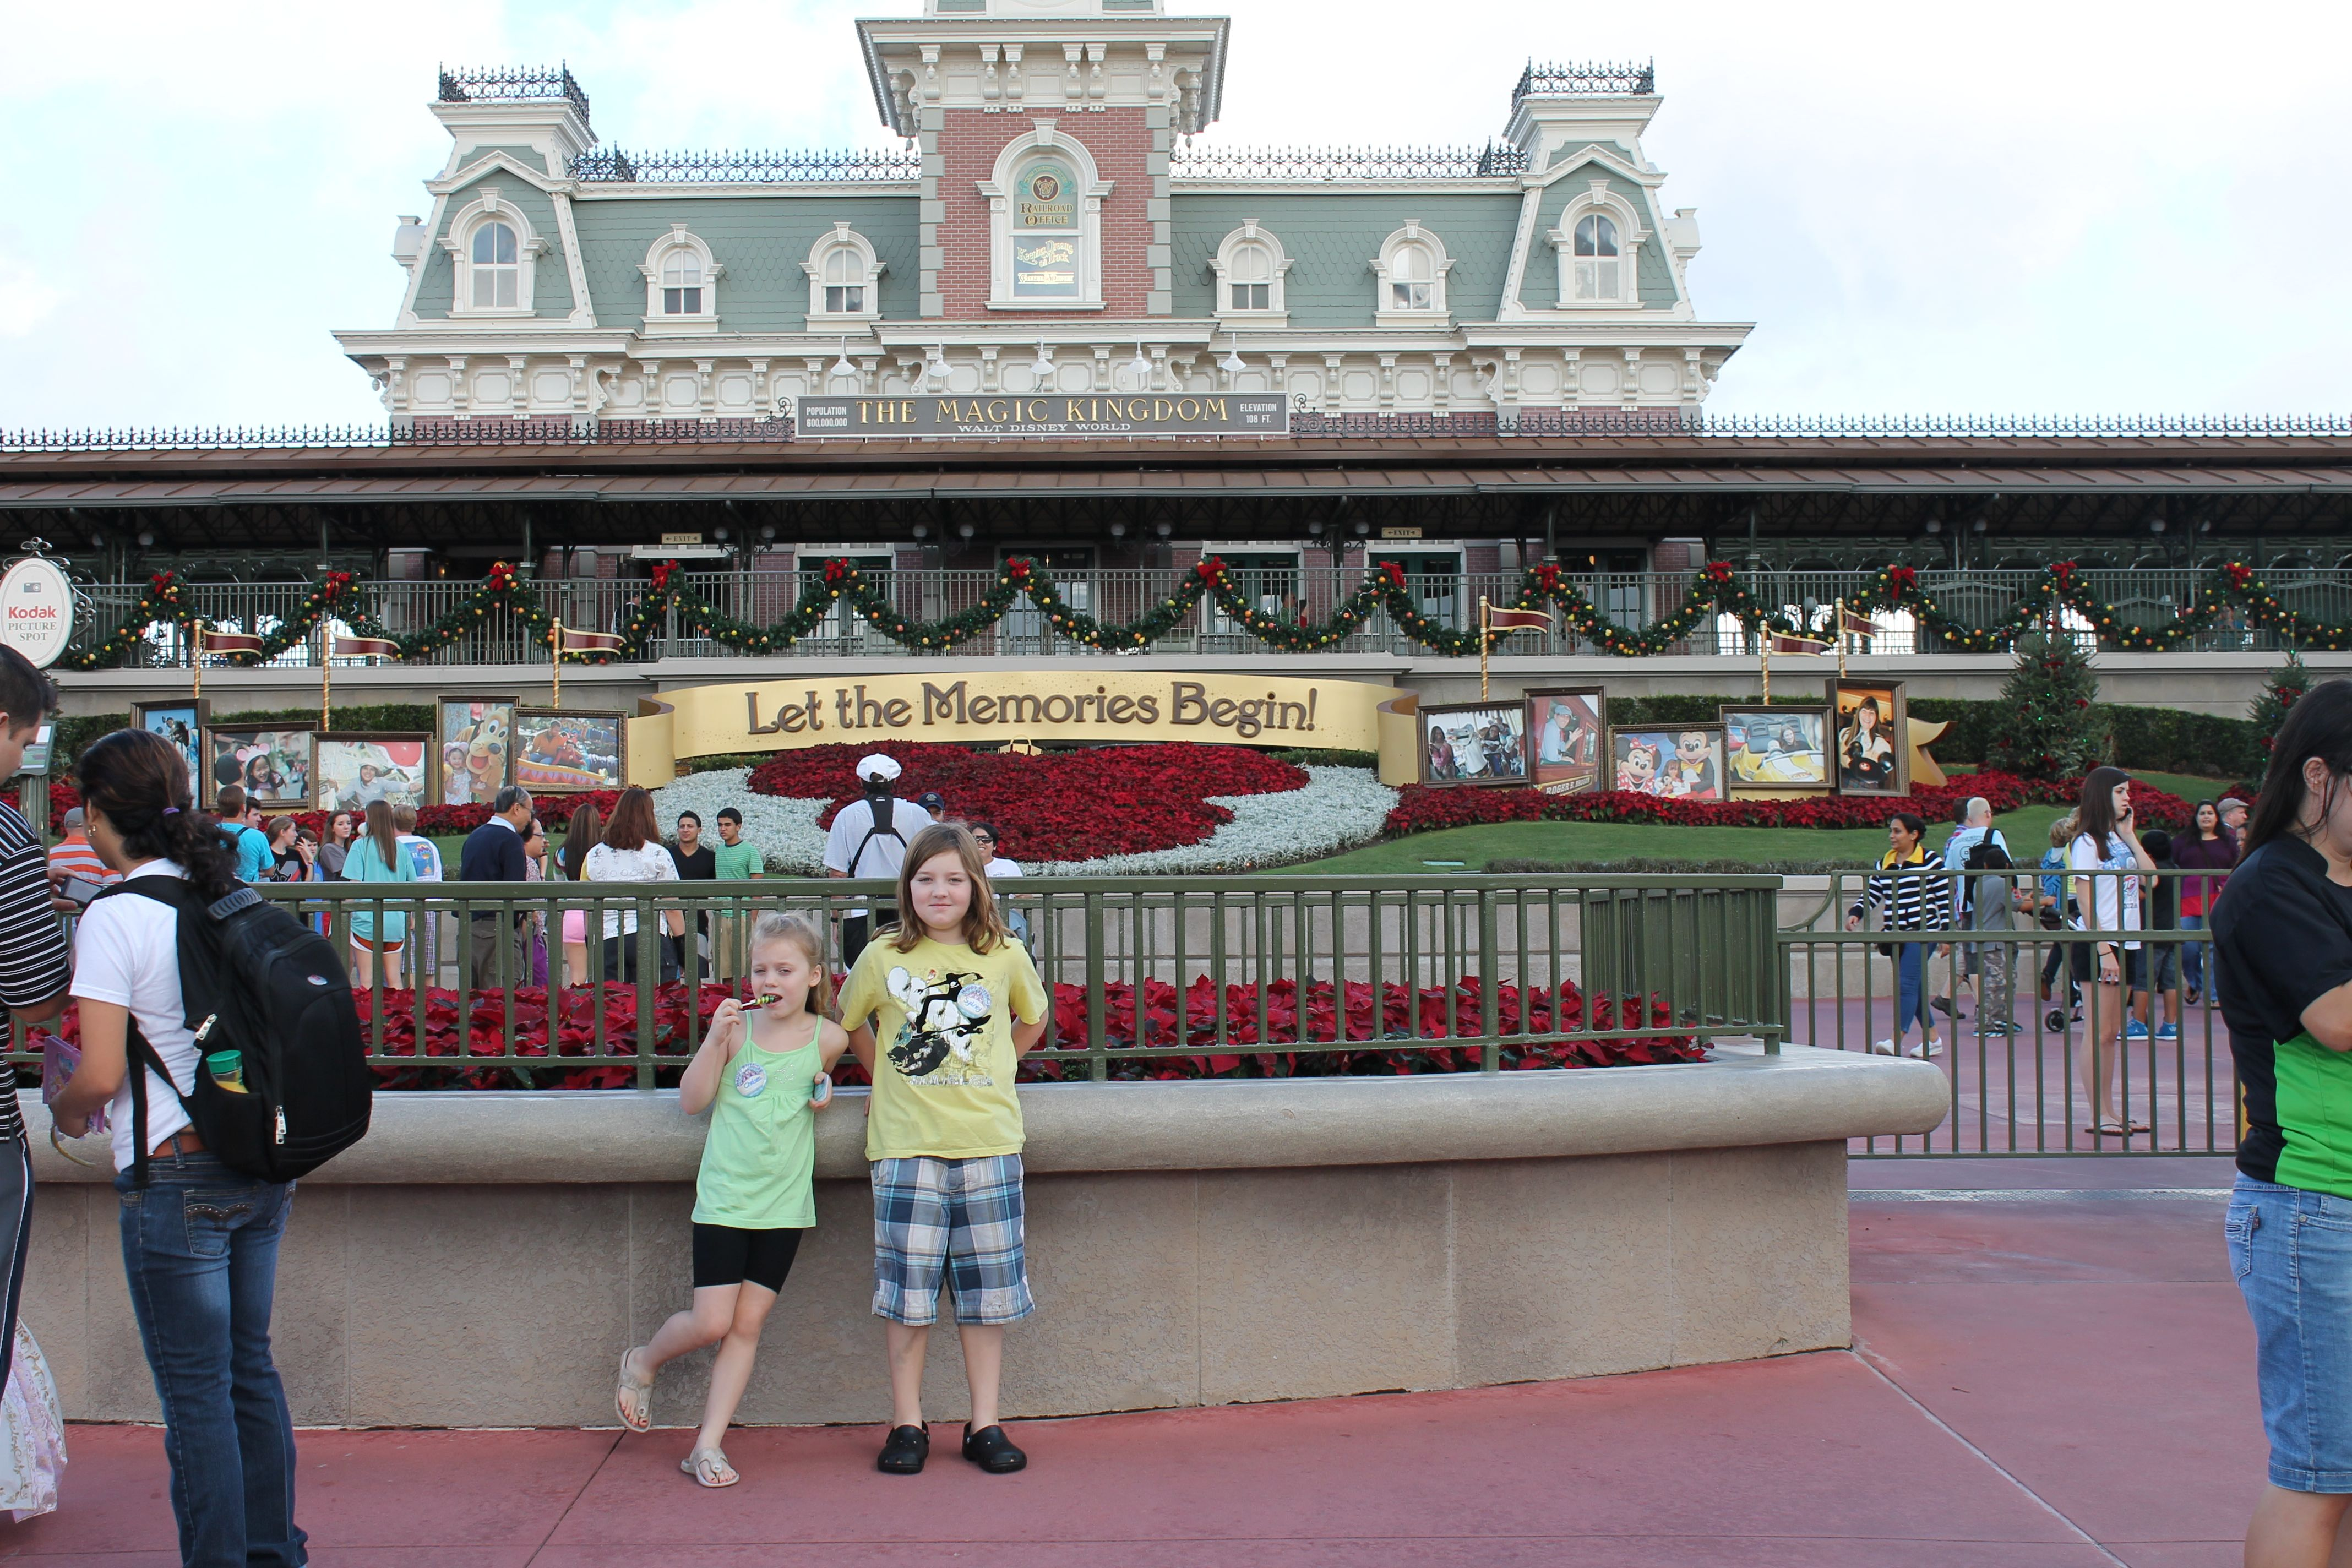 Magic Kingdom Must See Attractions